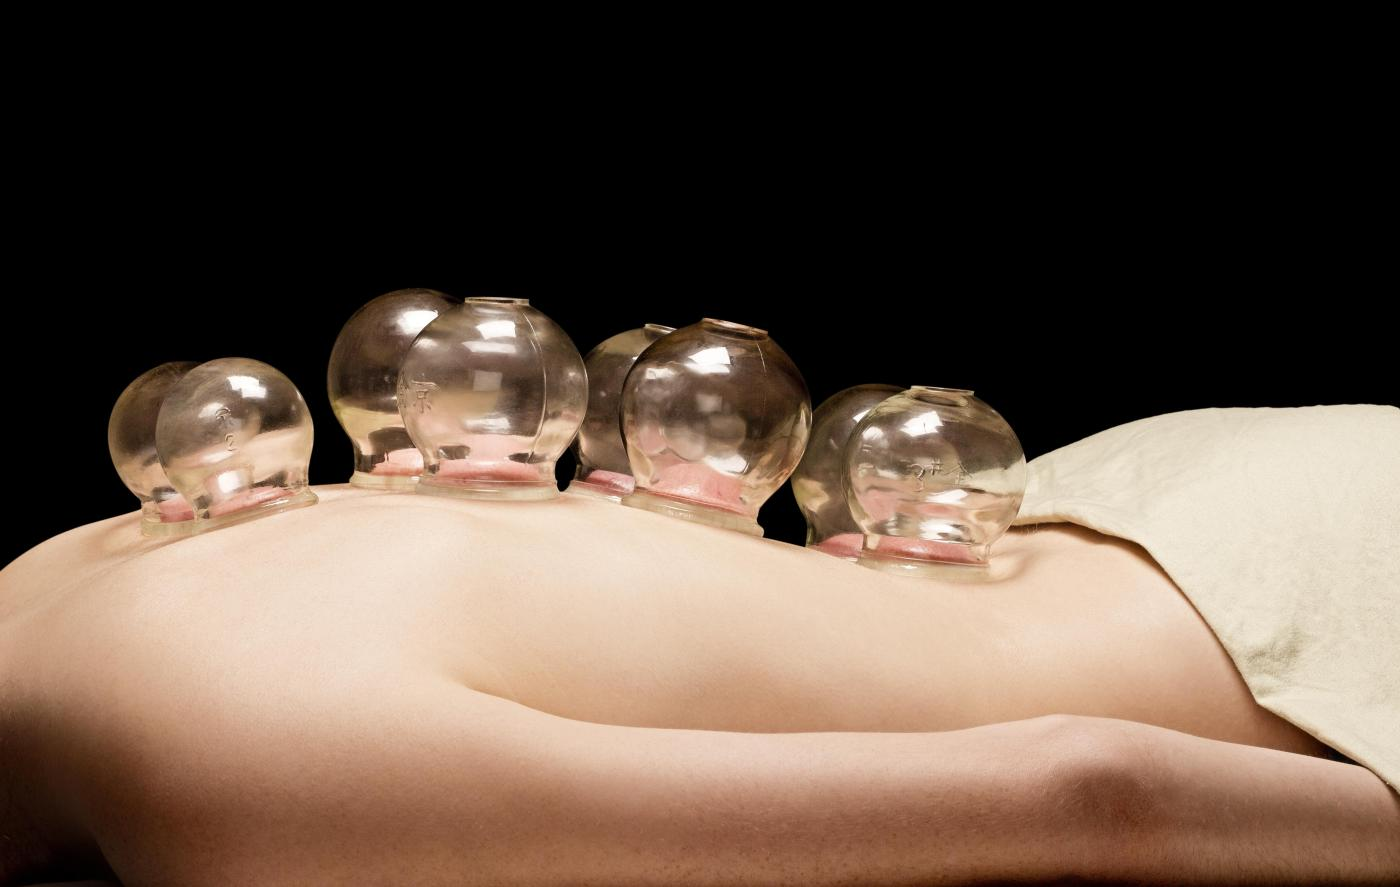 cupping massage therapy chinese medicine